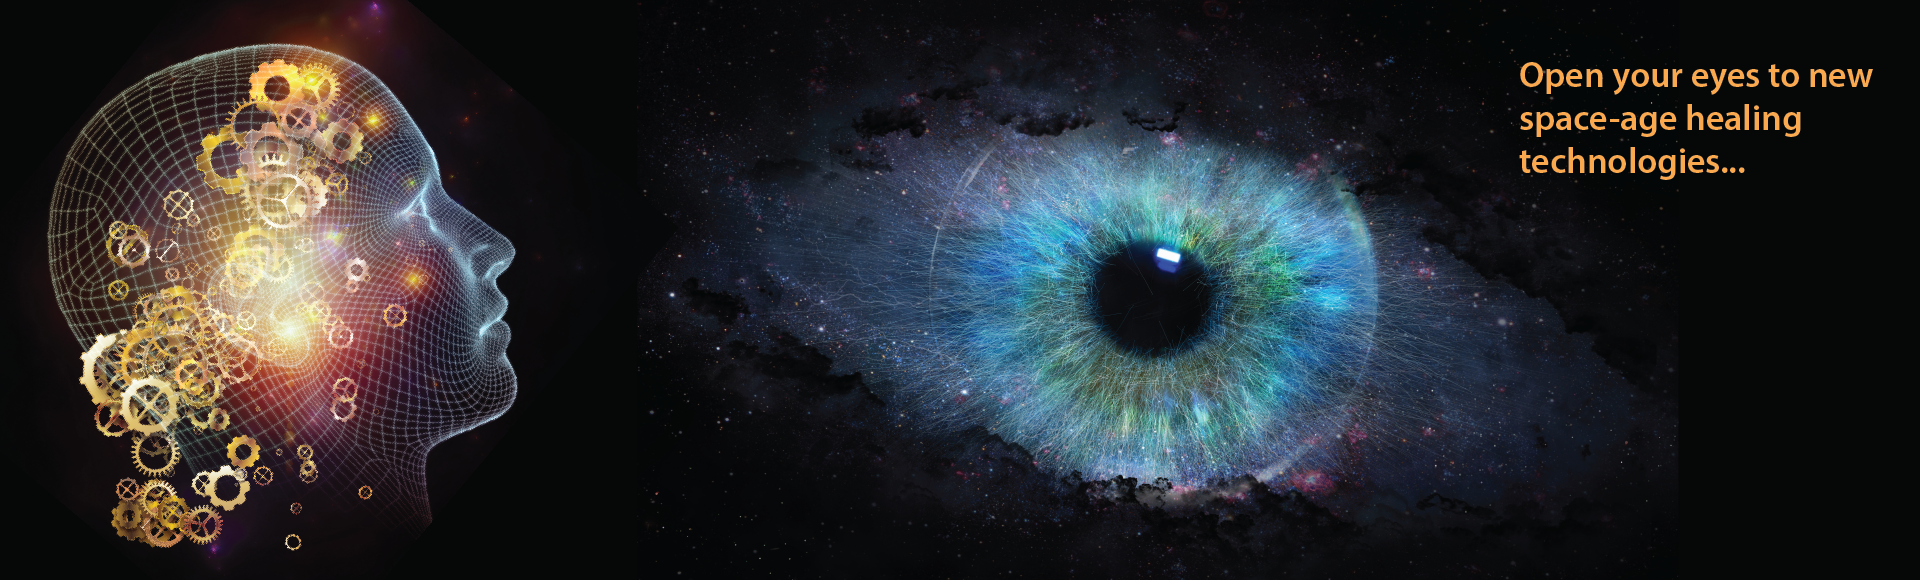 Open Your Eyes to New Space-Age Healing Technologies